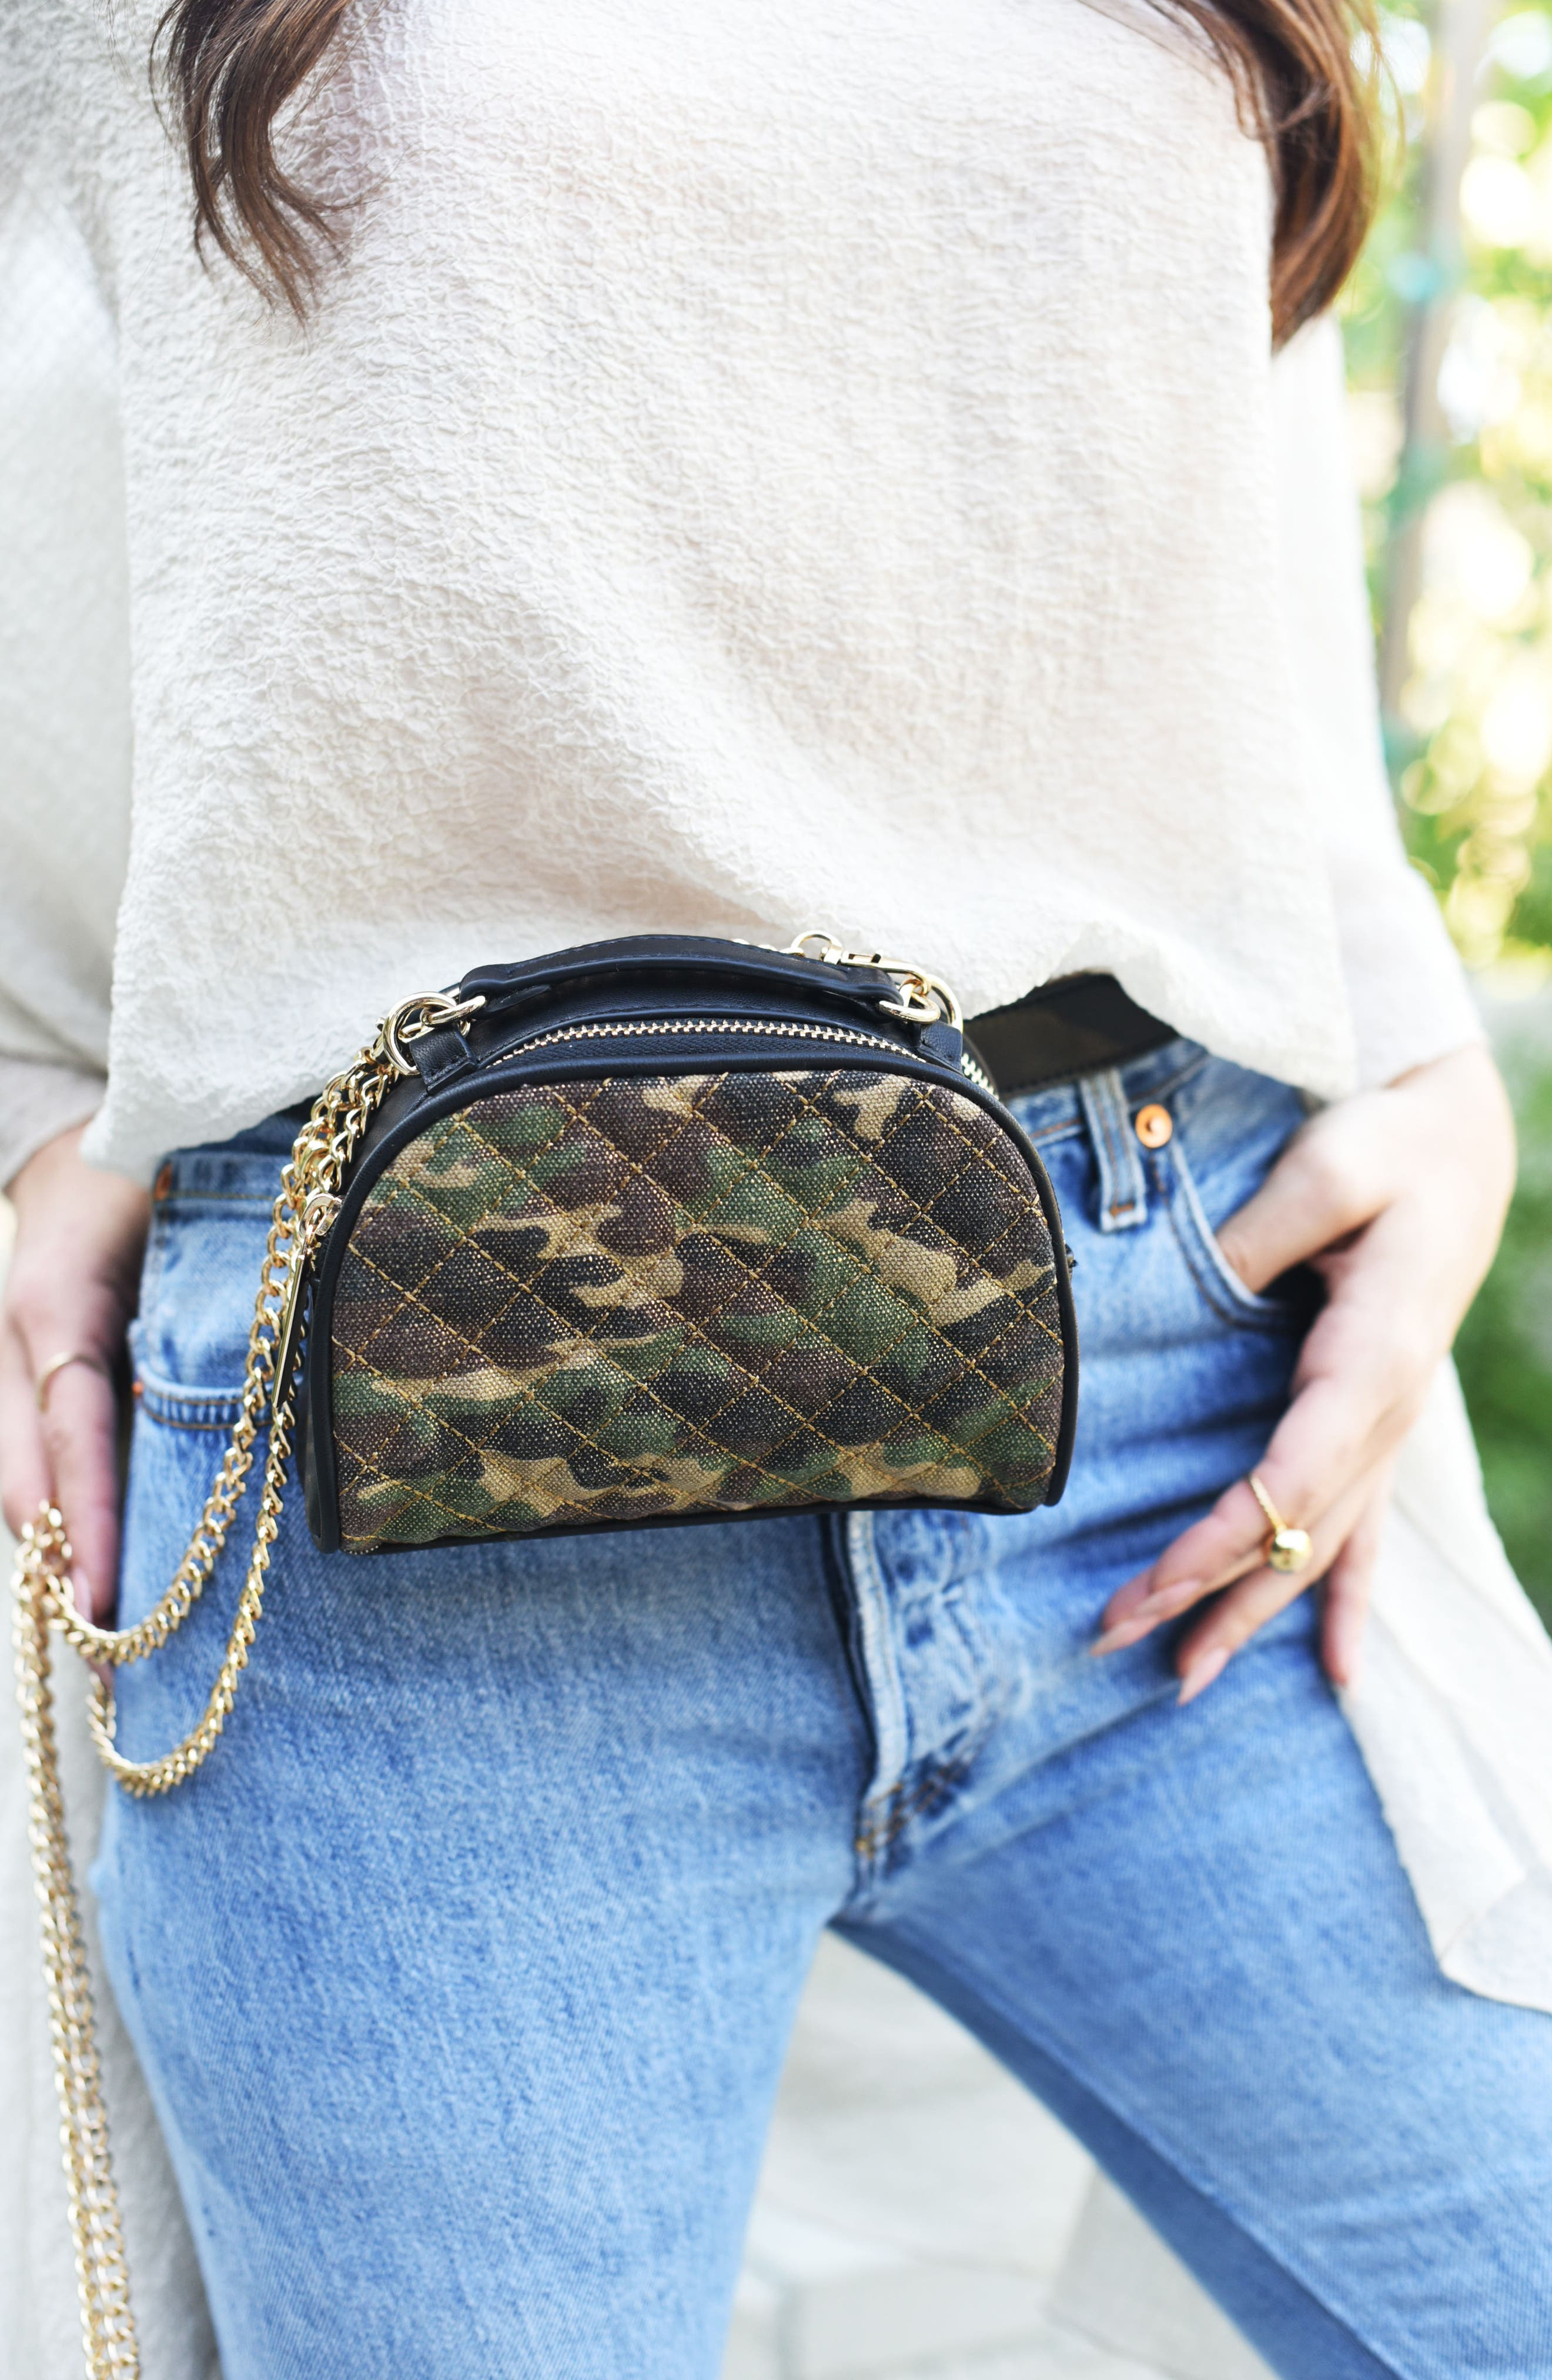 Mali + Lili Quilted Camouflage Belt Bag,                             Alternate thumbnail 9, color,                             340